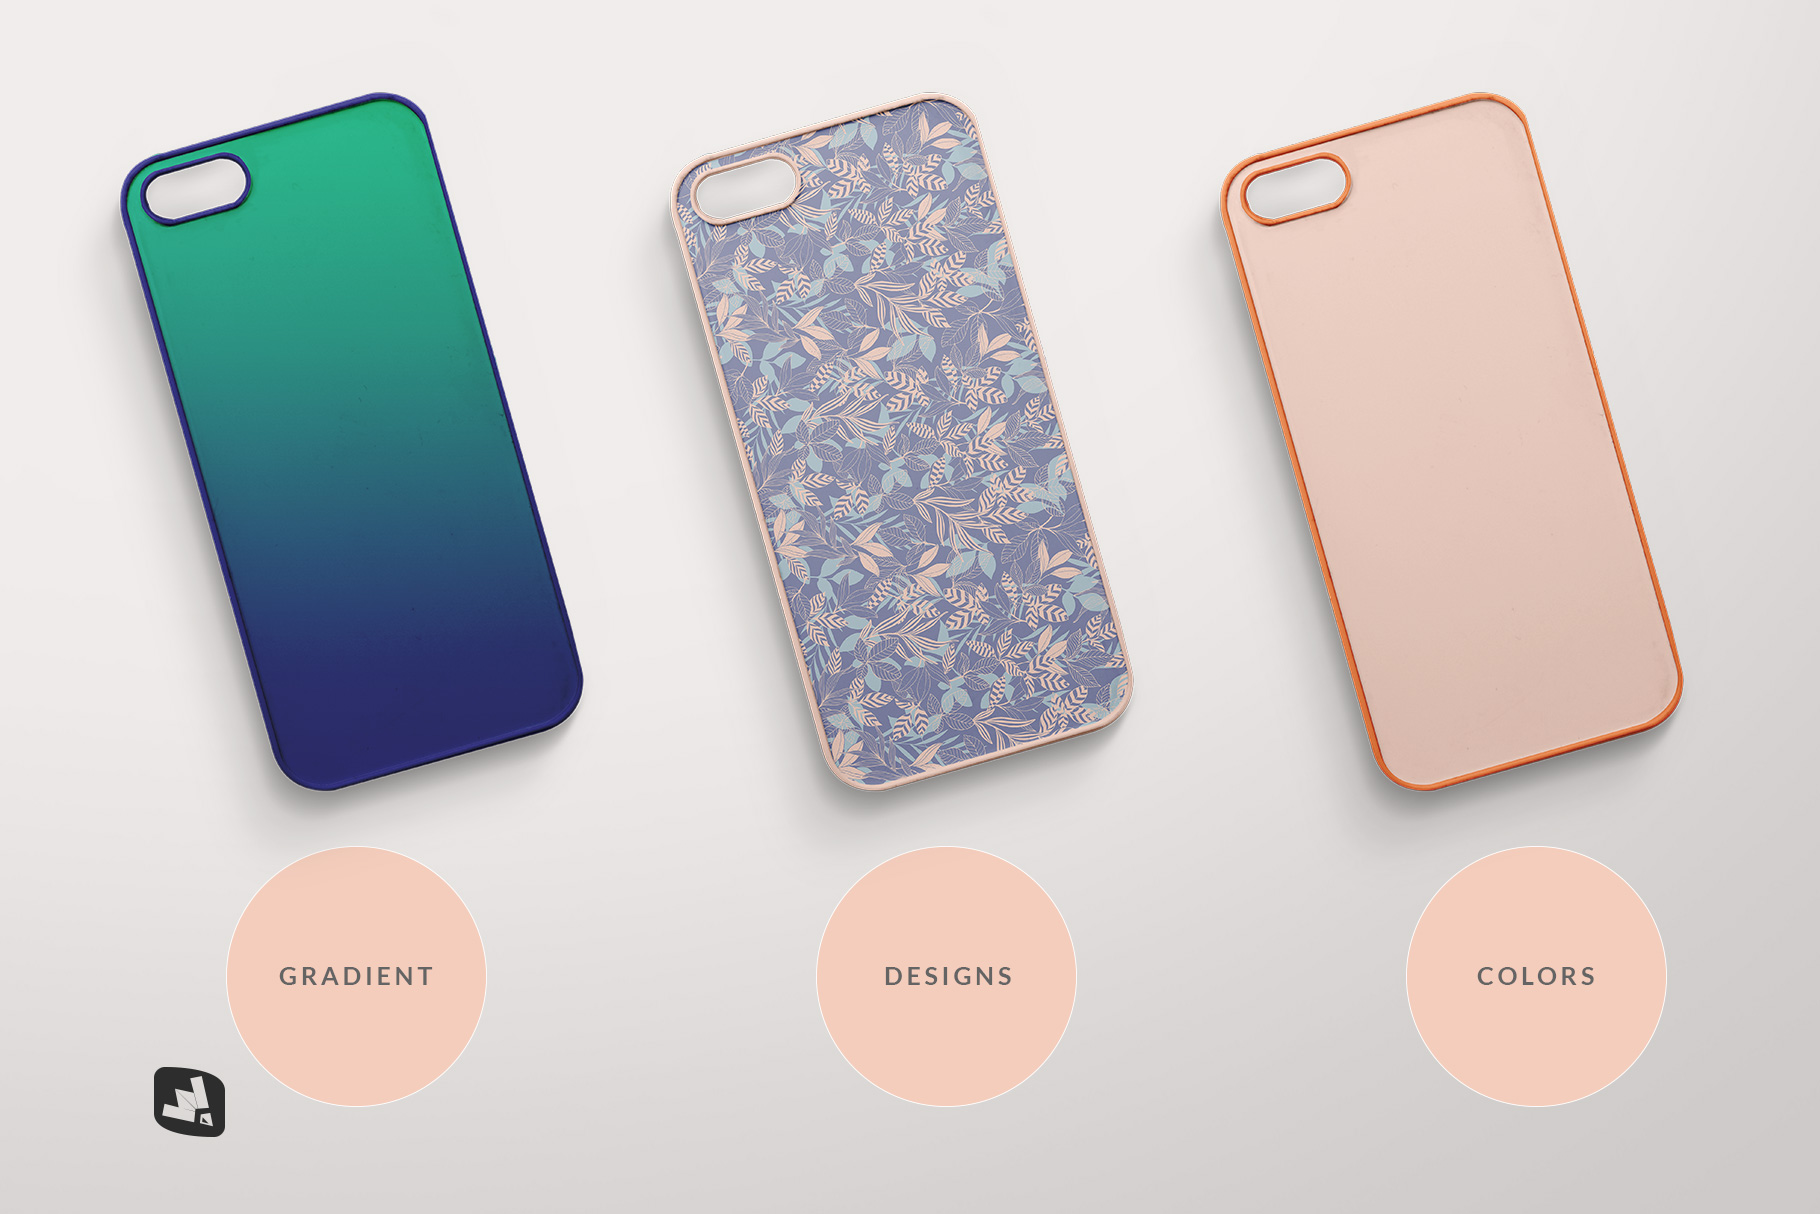 types of the top view phone case mockup